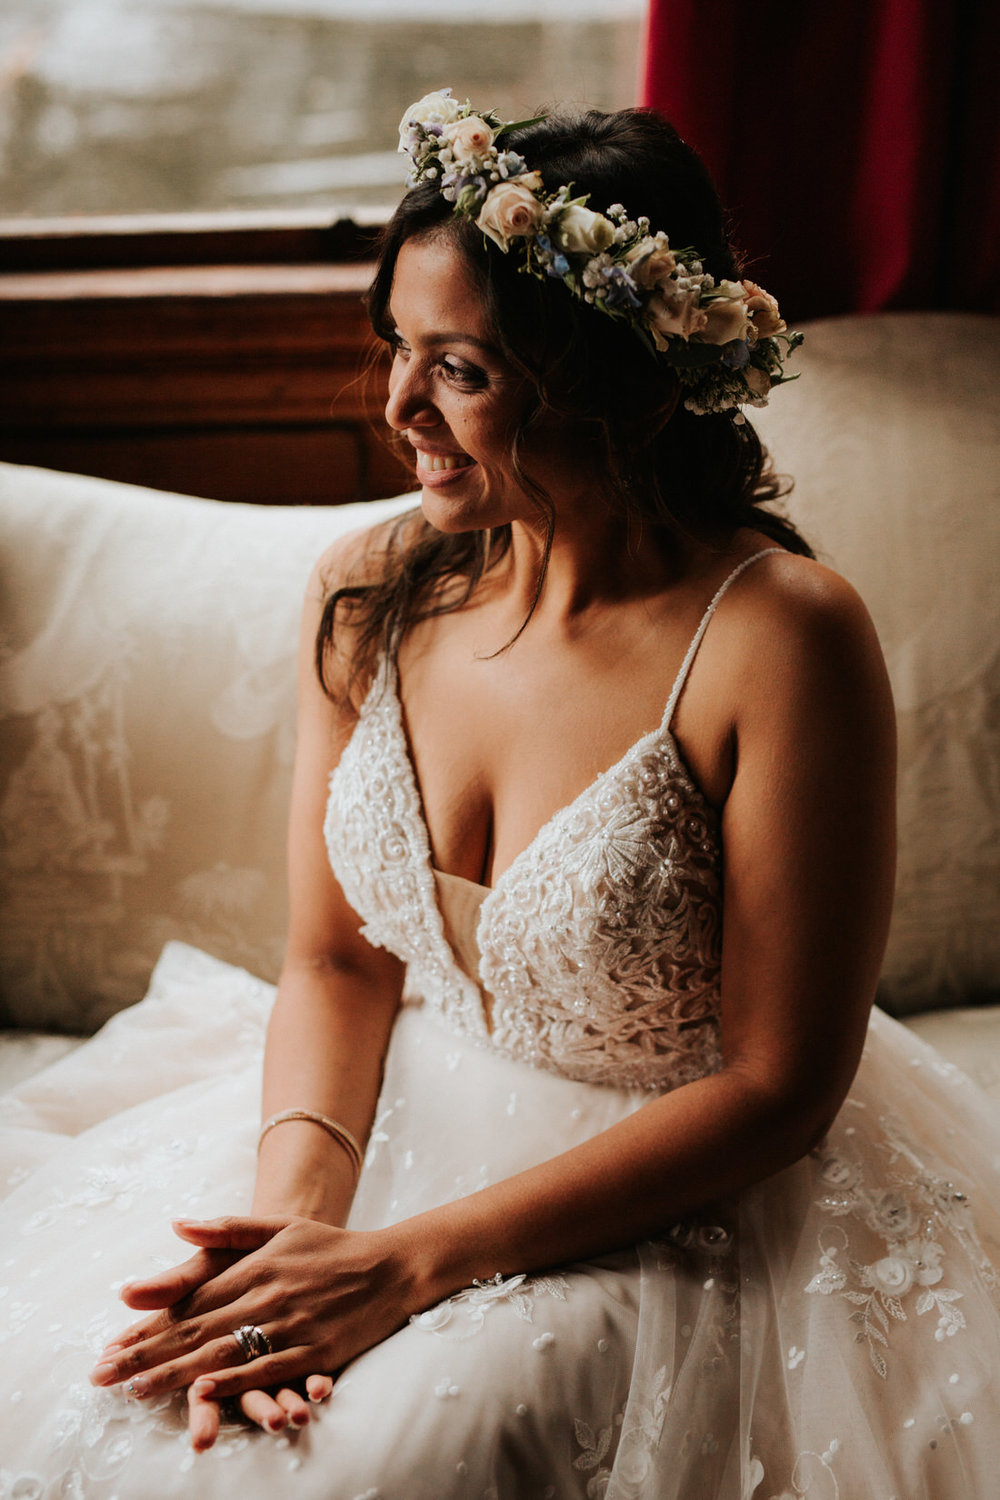 Upstate New York Catskills wedding photography